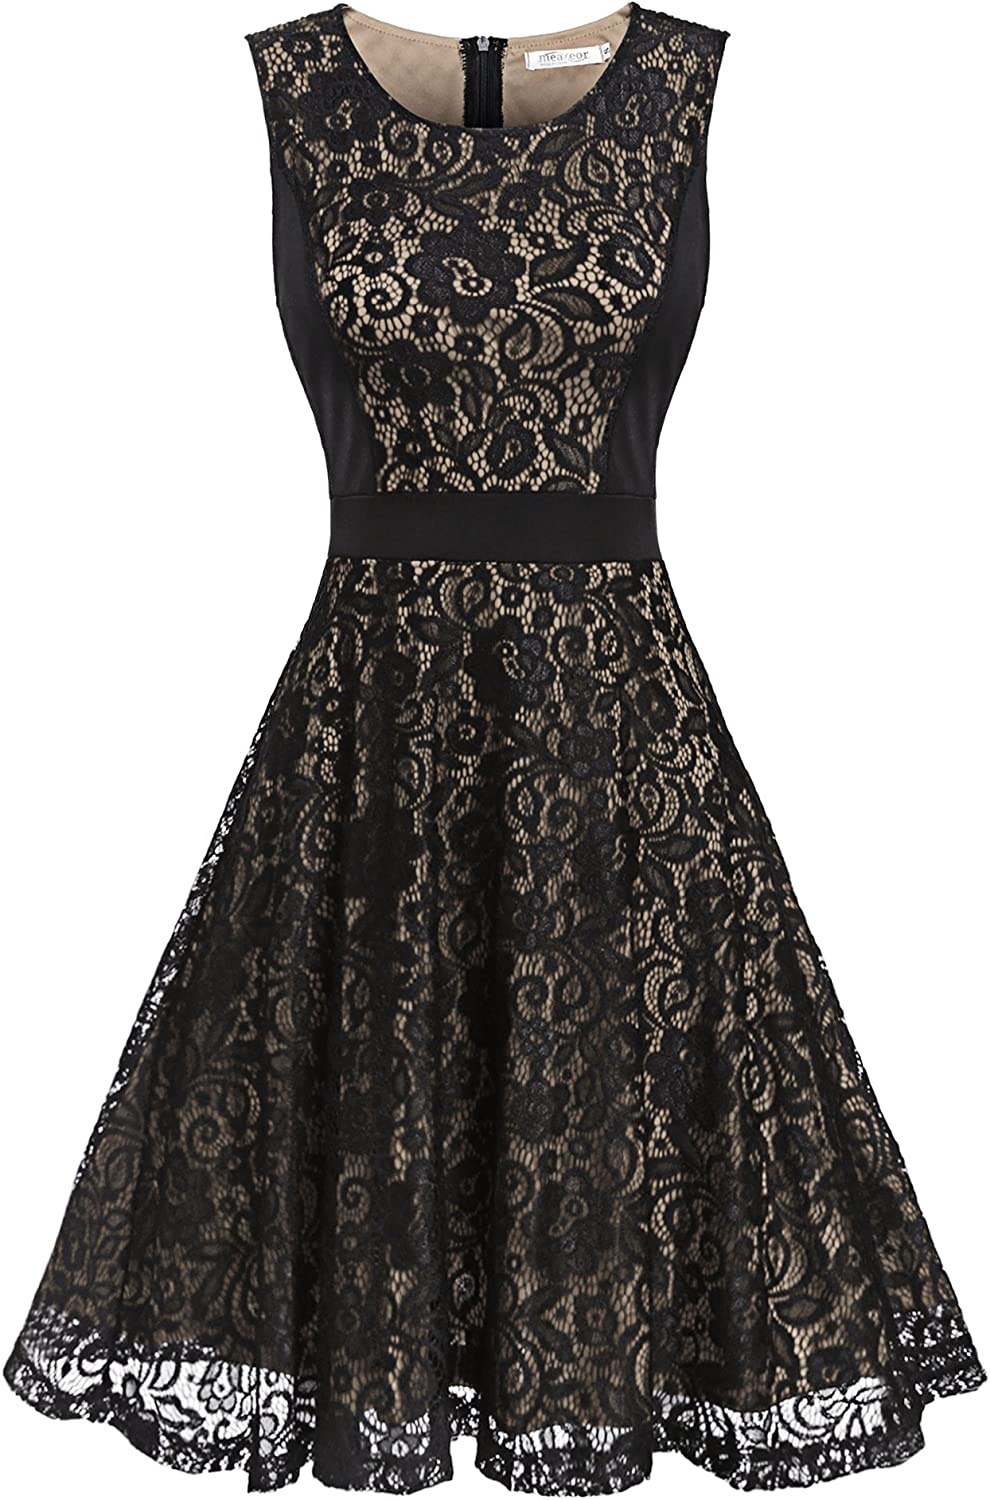 Zeagoo Women ALine Elegant Pleated Lace Sleeveless Prom Dress for Cocktail Evening Party